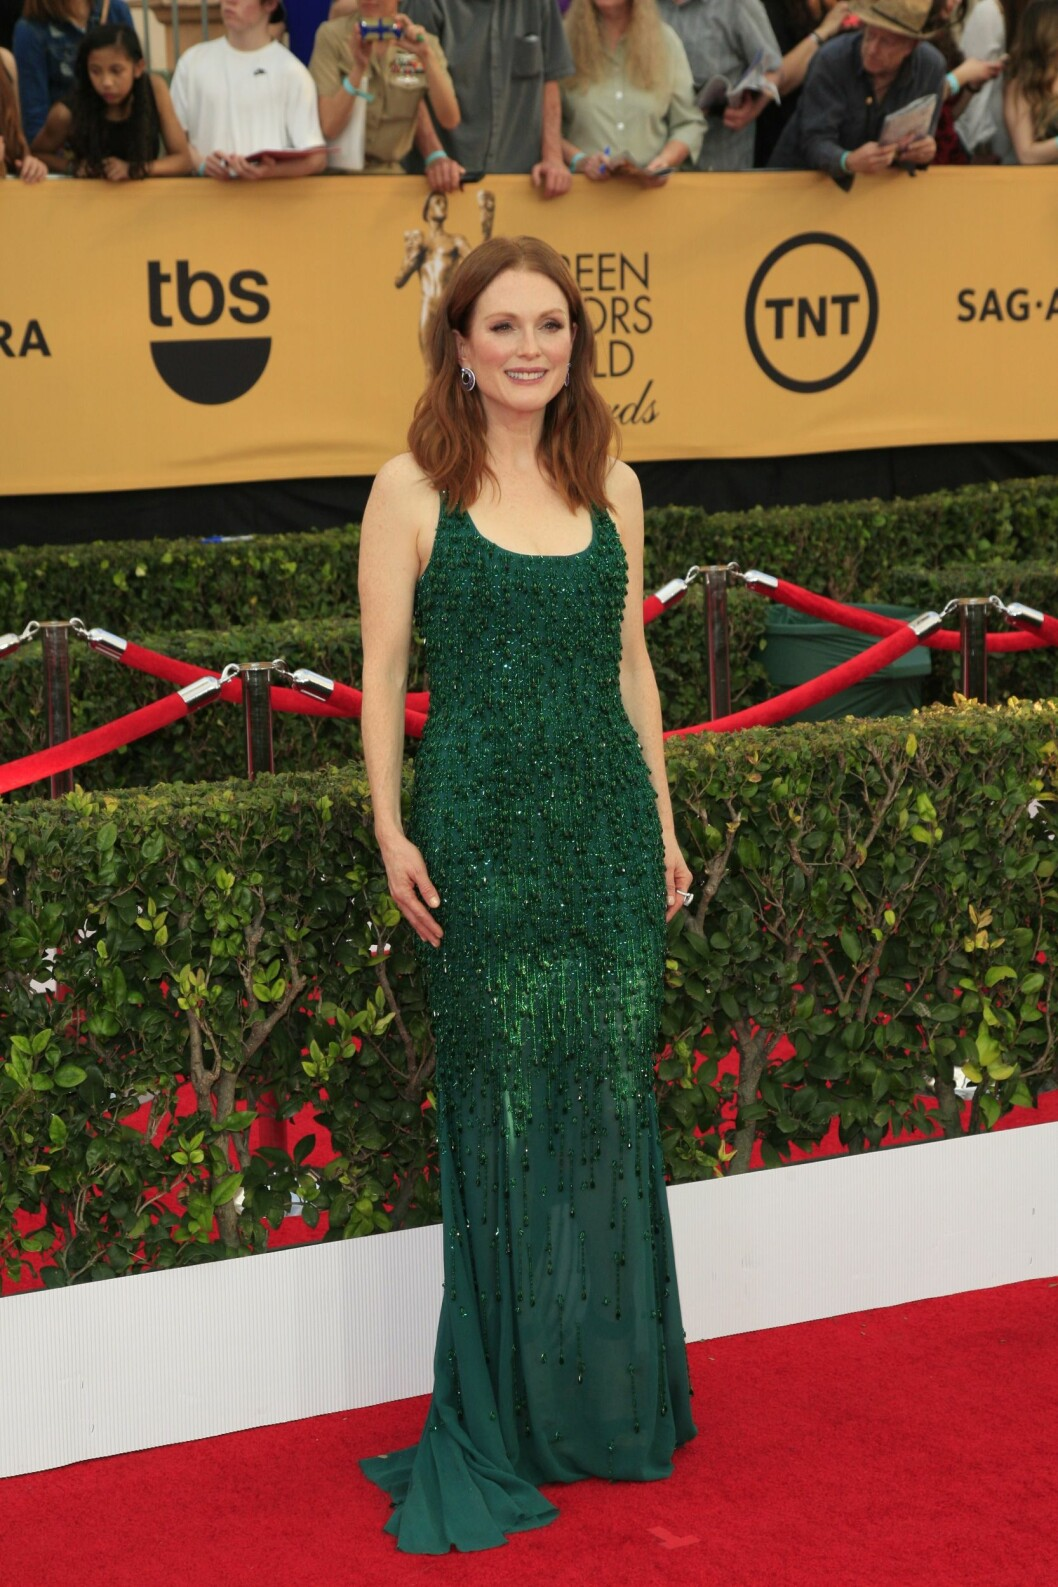 Julianne Moore i kjole fra Givenchy. Foto: insight media/All Over Press